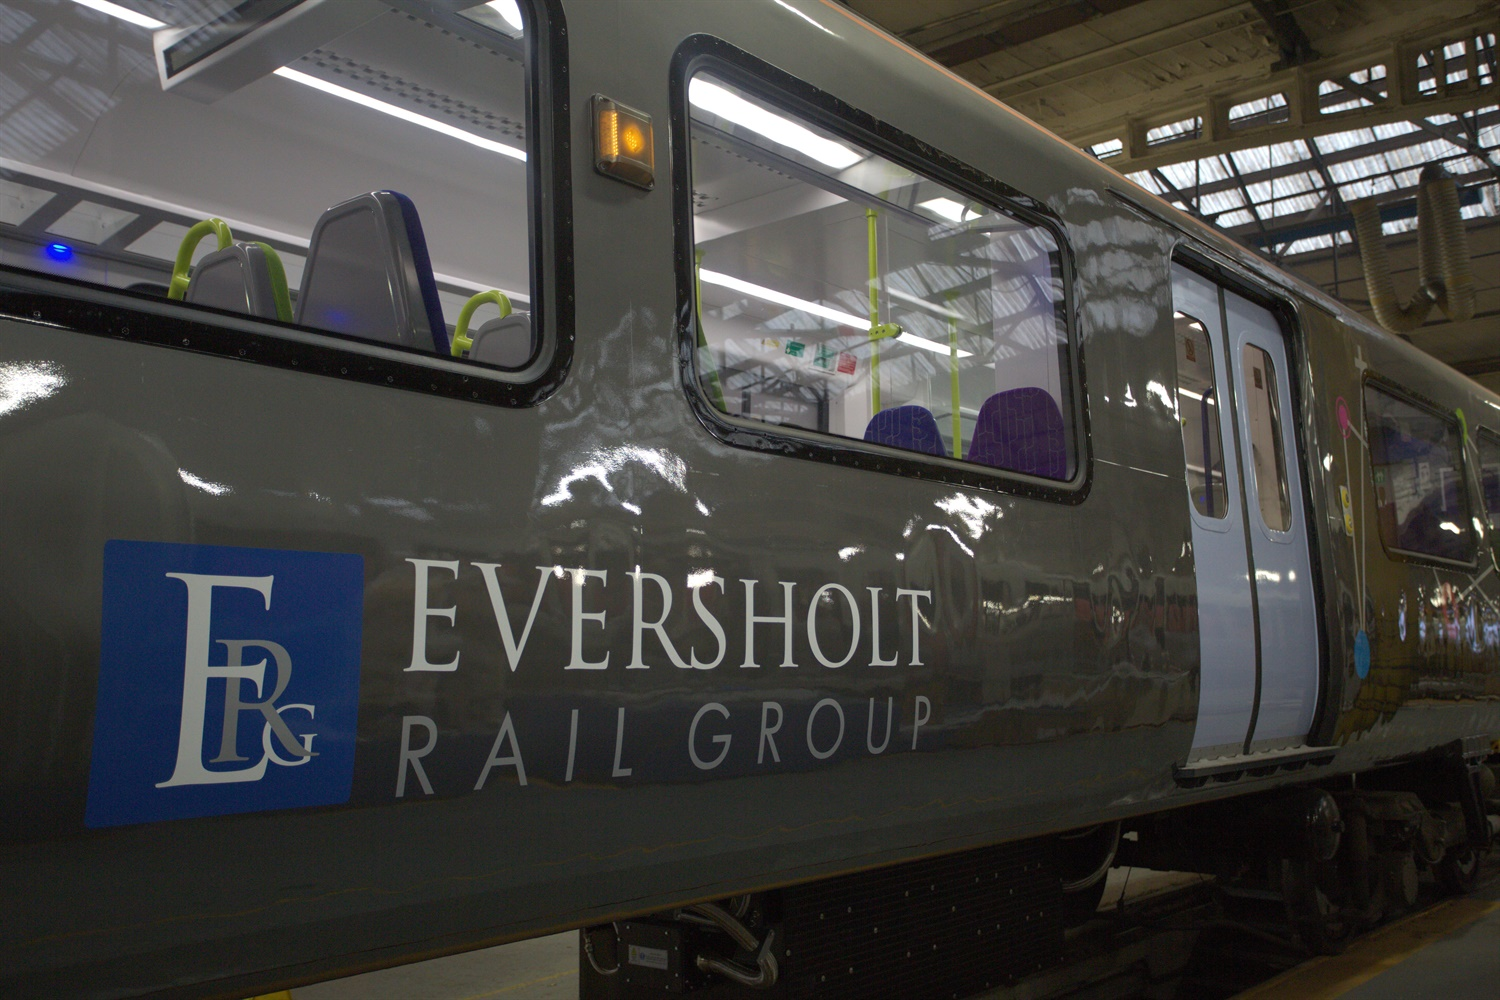 Hong Kong conglomerate buys major UK rolling stock company